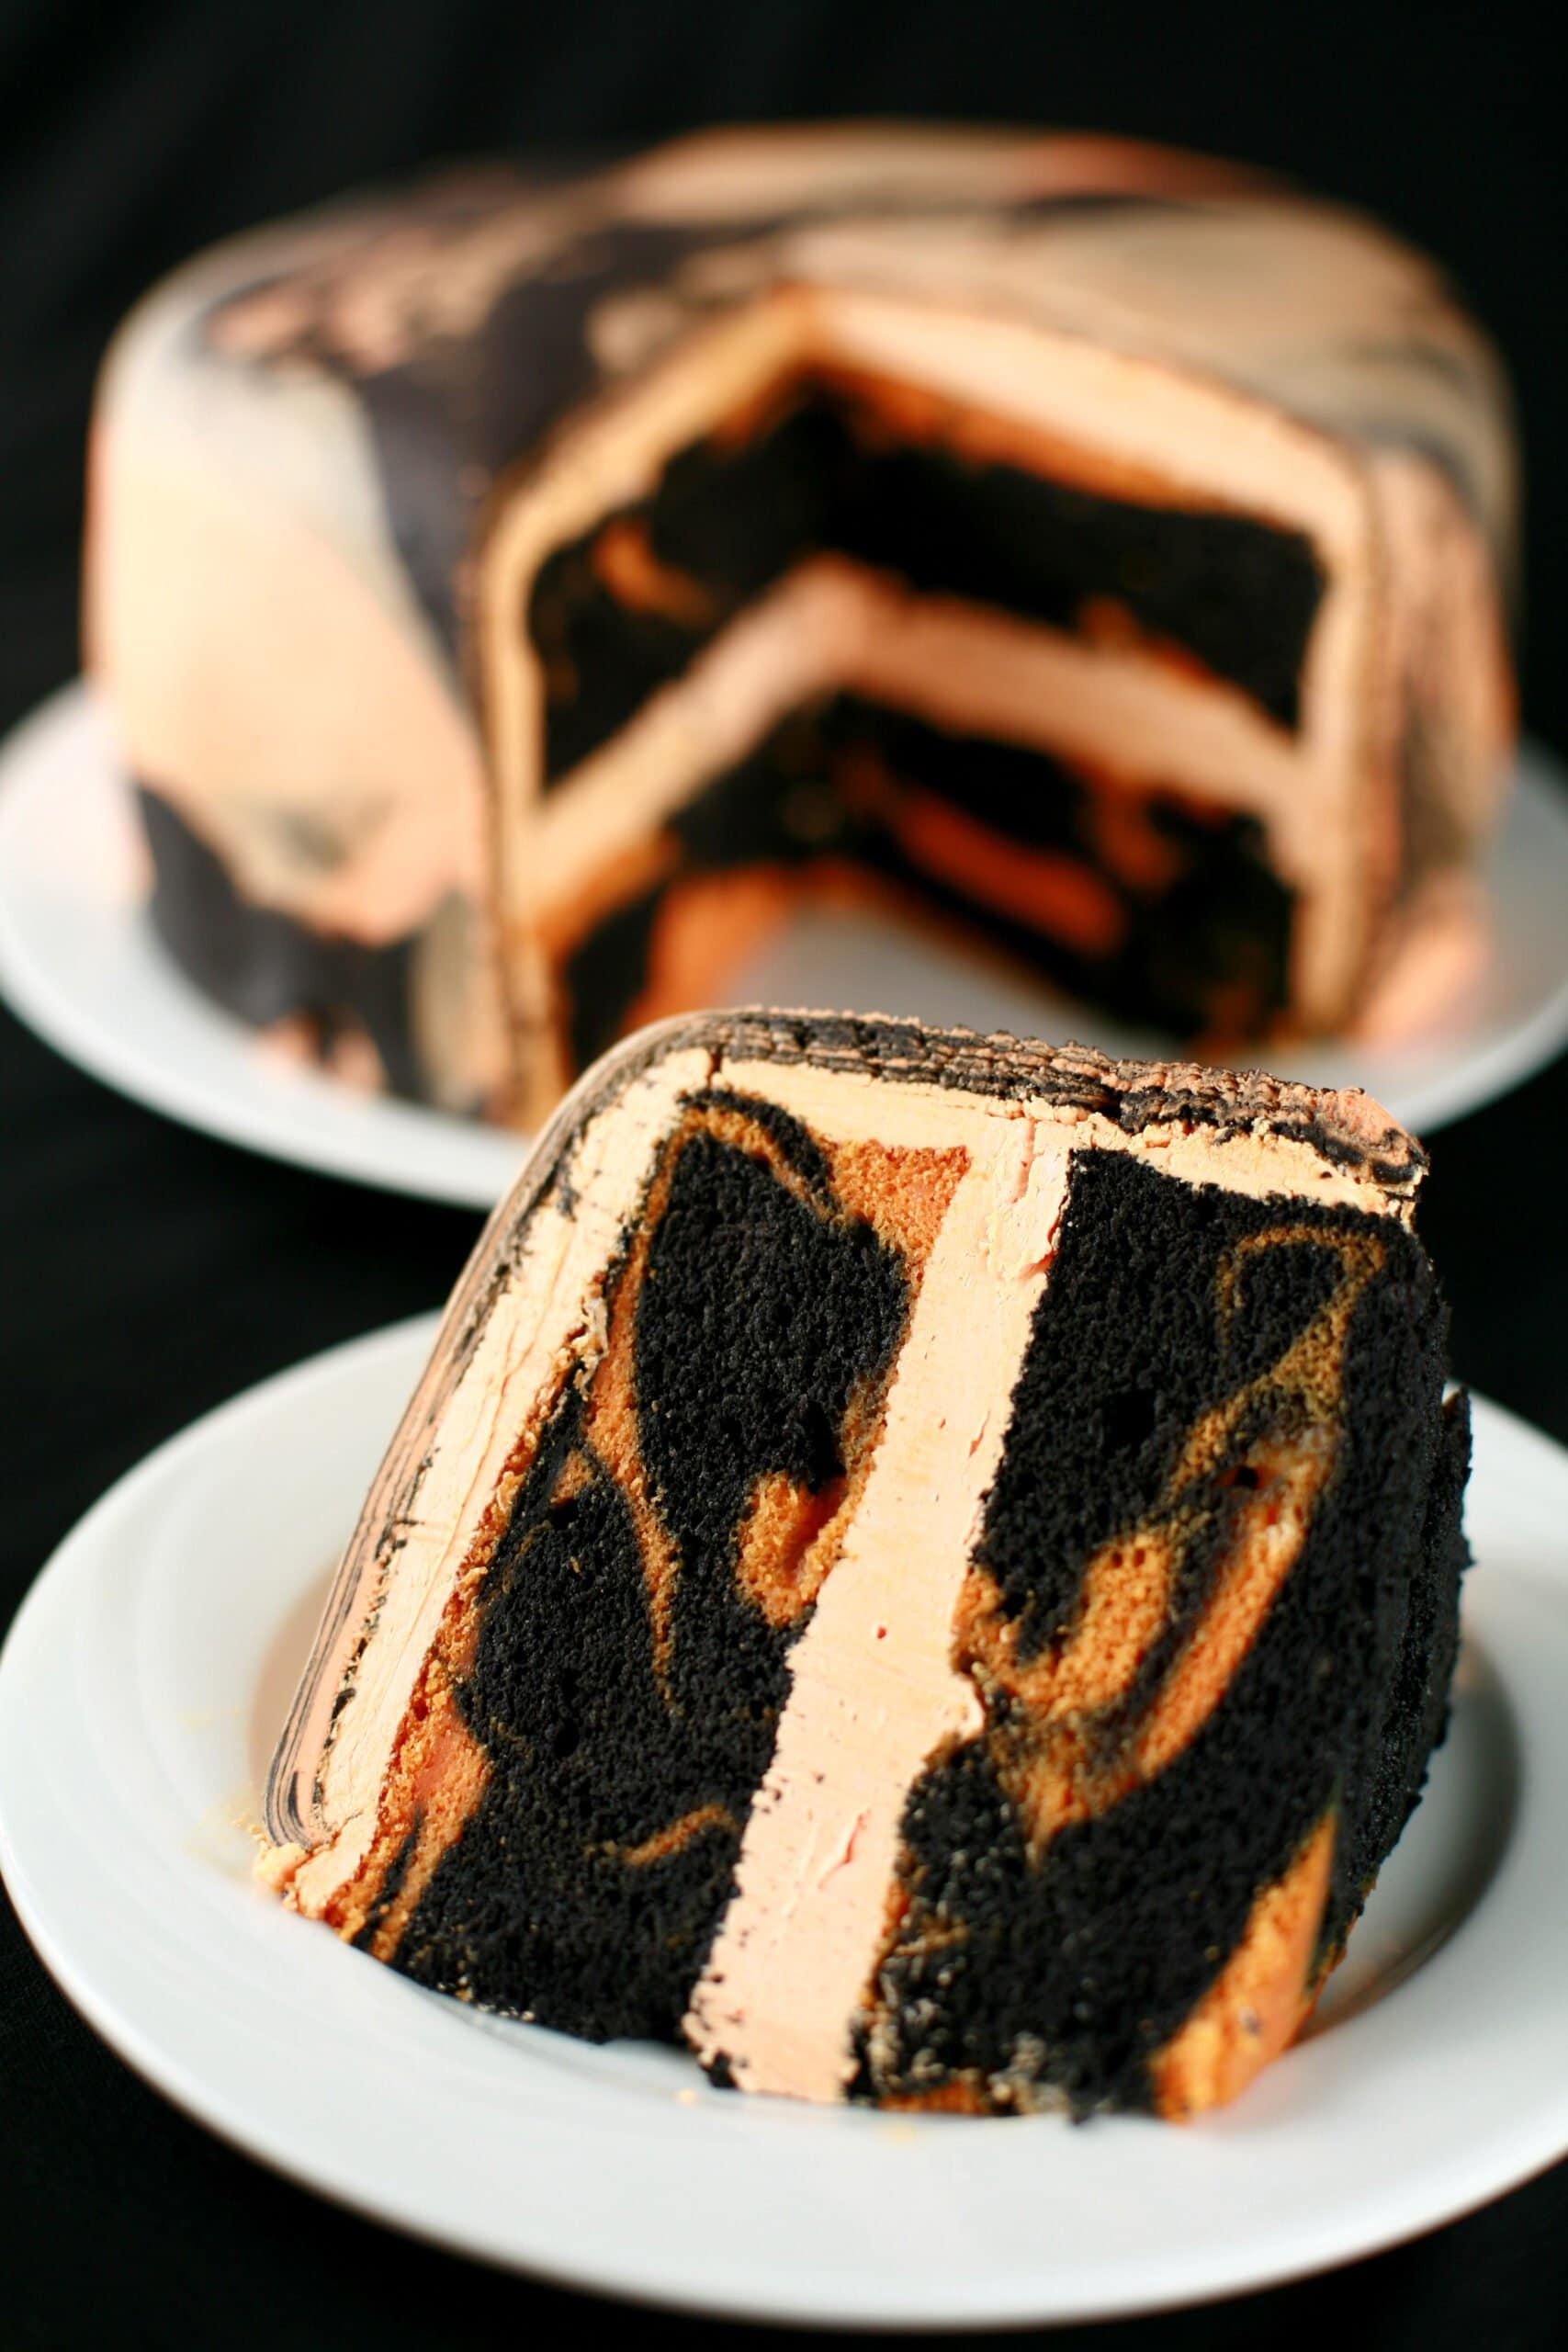 A large round tiger tail cake - black licorice and orange marbled cake, with orange buttercream - is shown with a slcie cut out, and served on a plate in front of it.